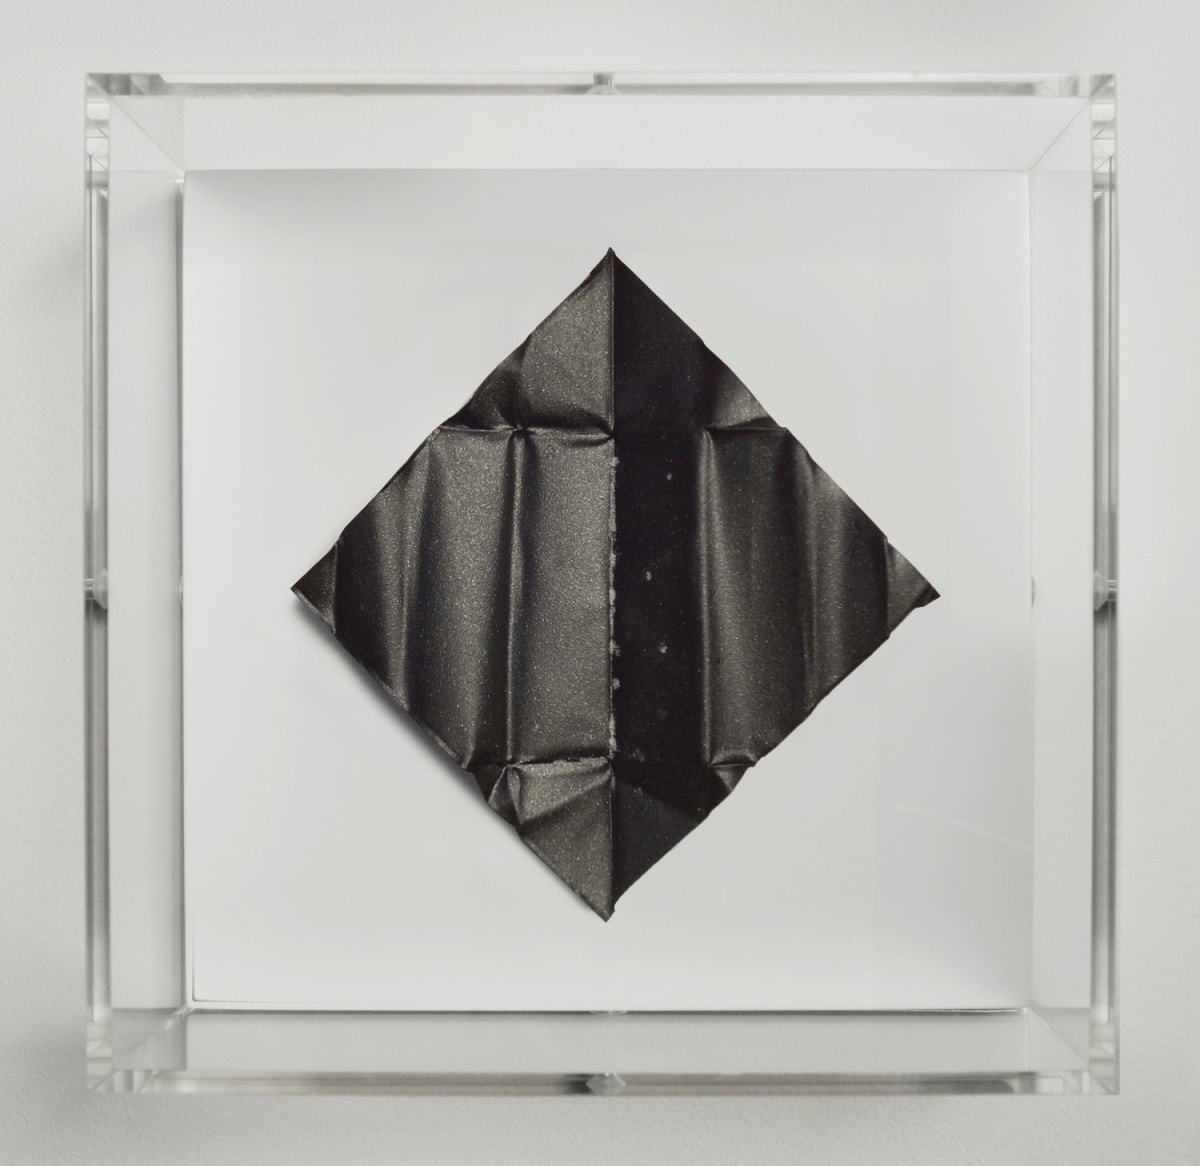 Mat Collishaw The Release - Deep Black, 2018 Diamond dust, folded aluminium, wood, acrylic, paint FRAMED 18.5 x 18.5 x 6.5 cm Edition of 10 Signed and numbered